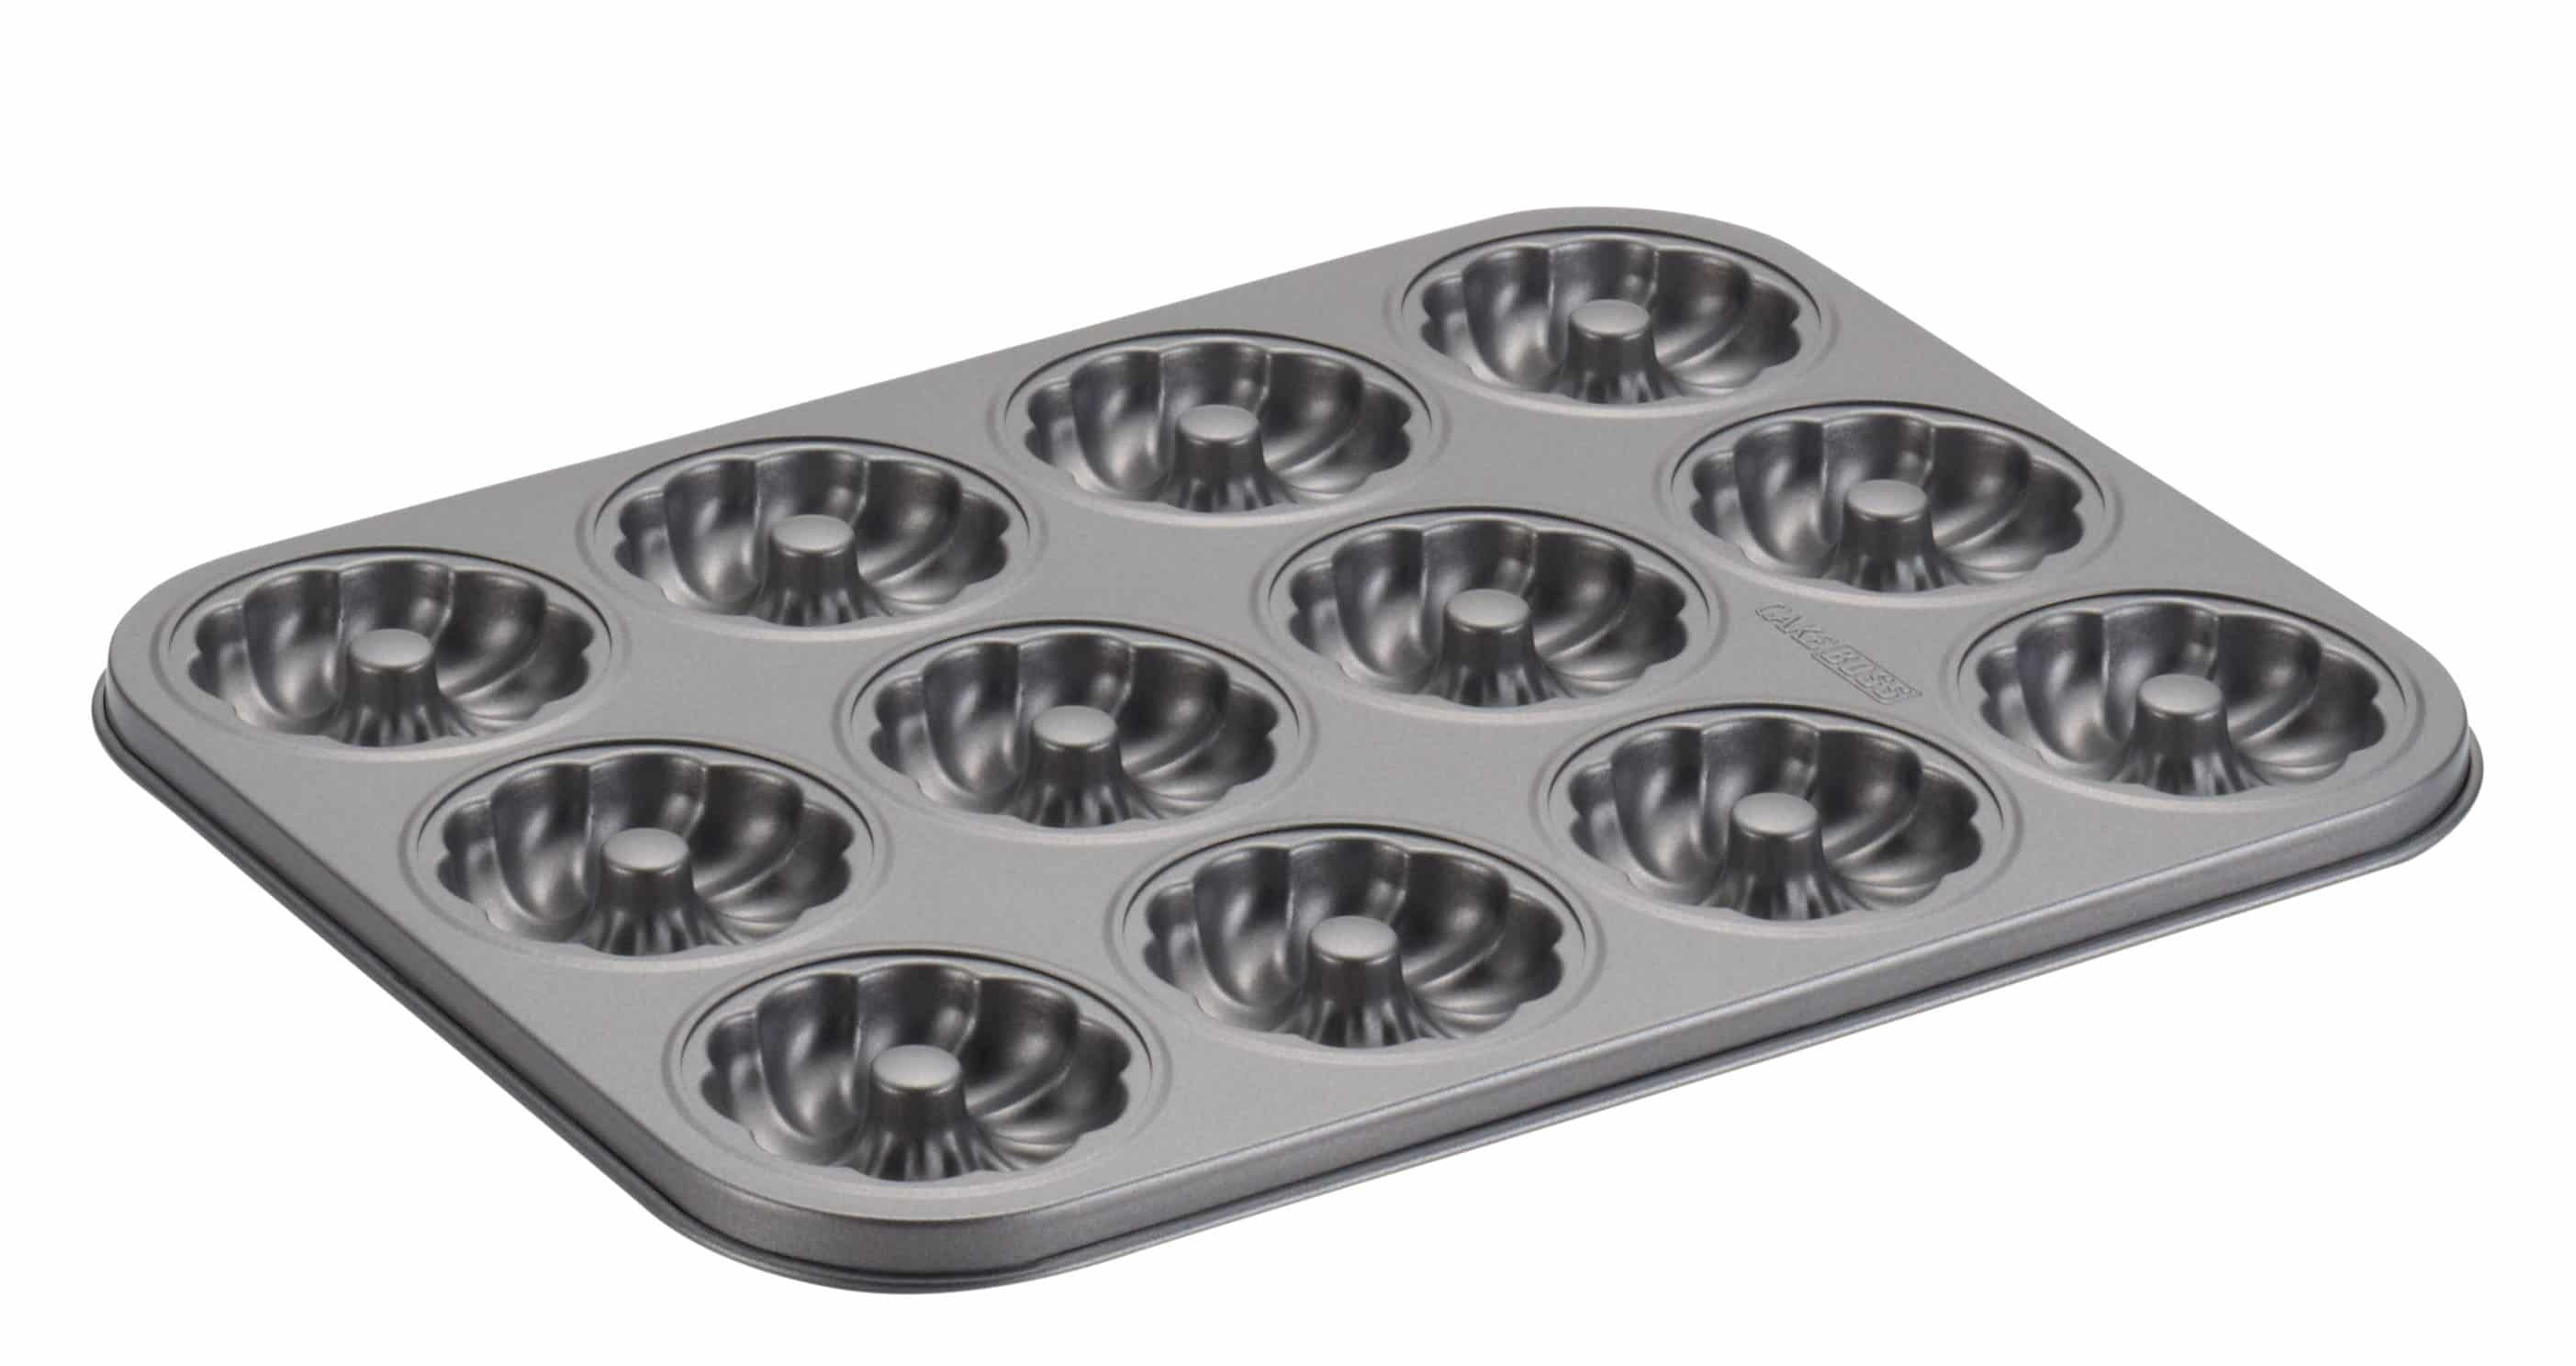 cake boss cookie pan with braided design